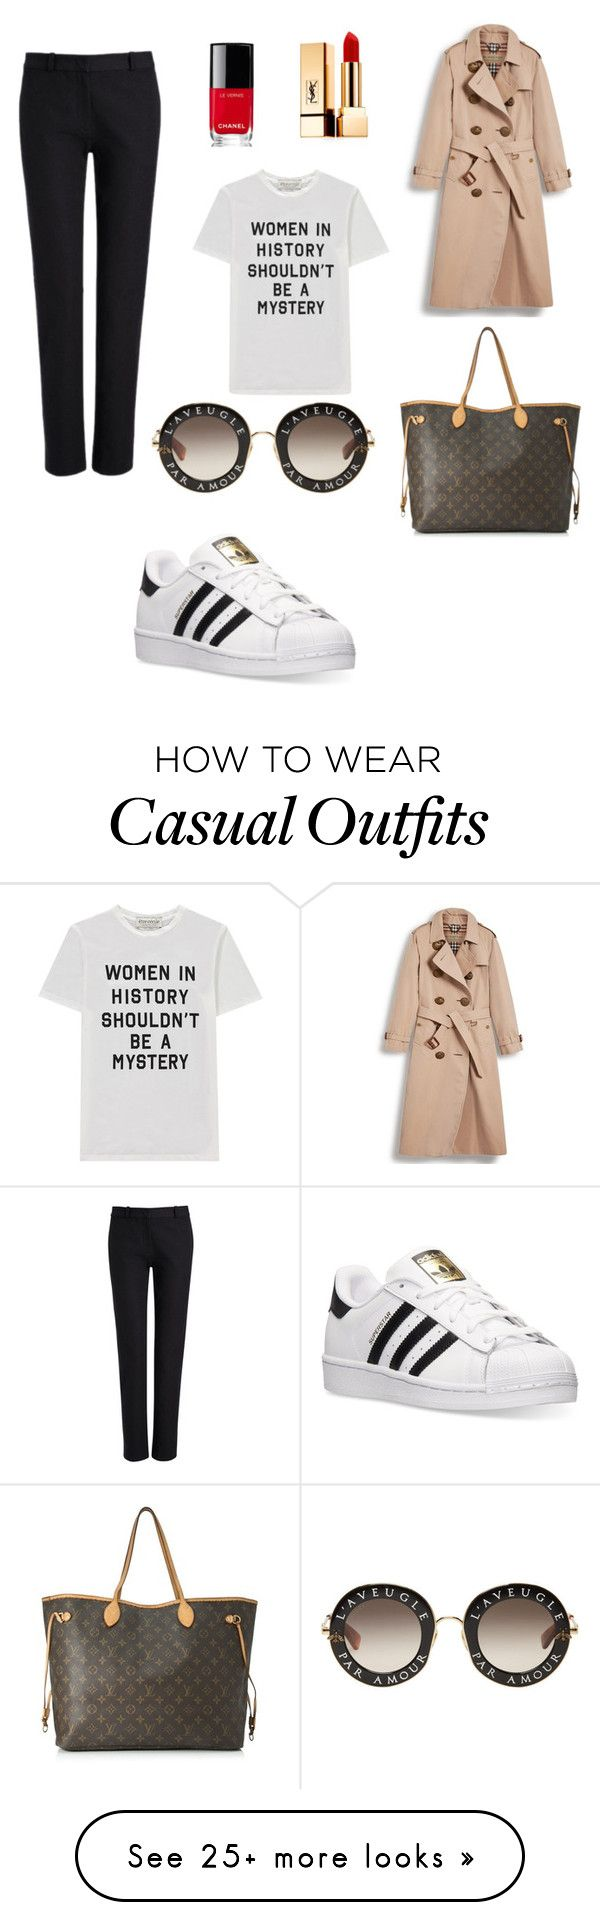 """""""smart casual"""" by okonig on Polyvore featuring Joseph, adidas, Burberry, Être Cécile, Louis Vuitton, Chanel, Yves Saint Laurent, Gucci, purplepower and internationalwomensday"""